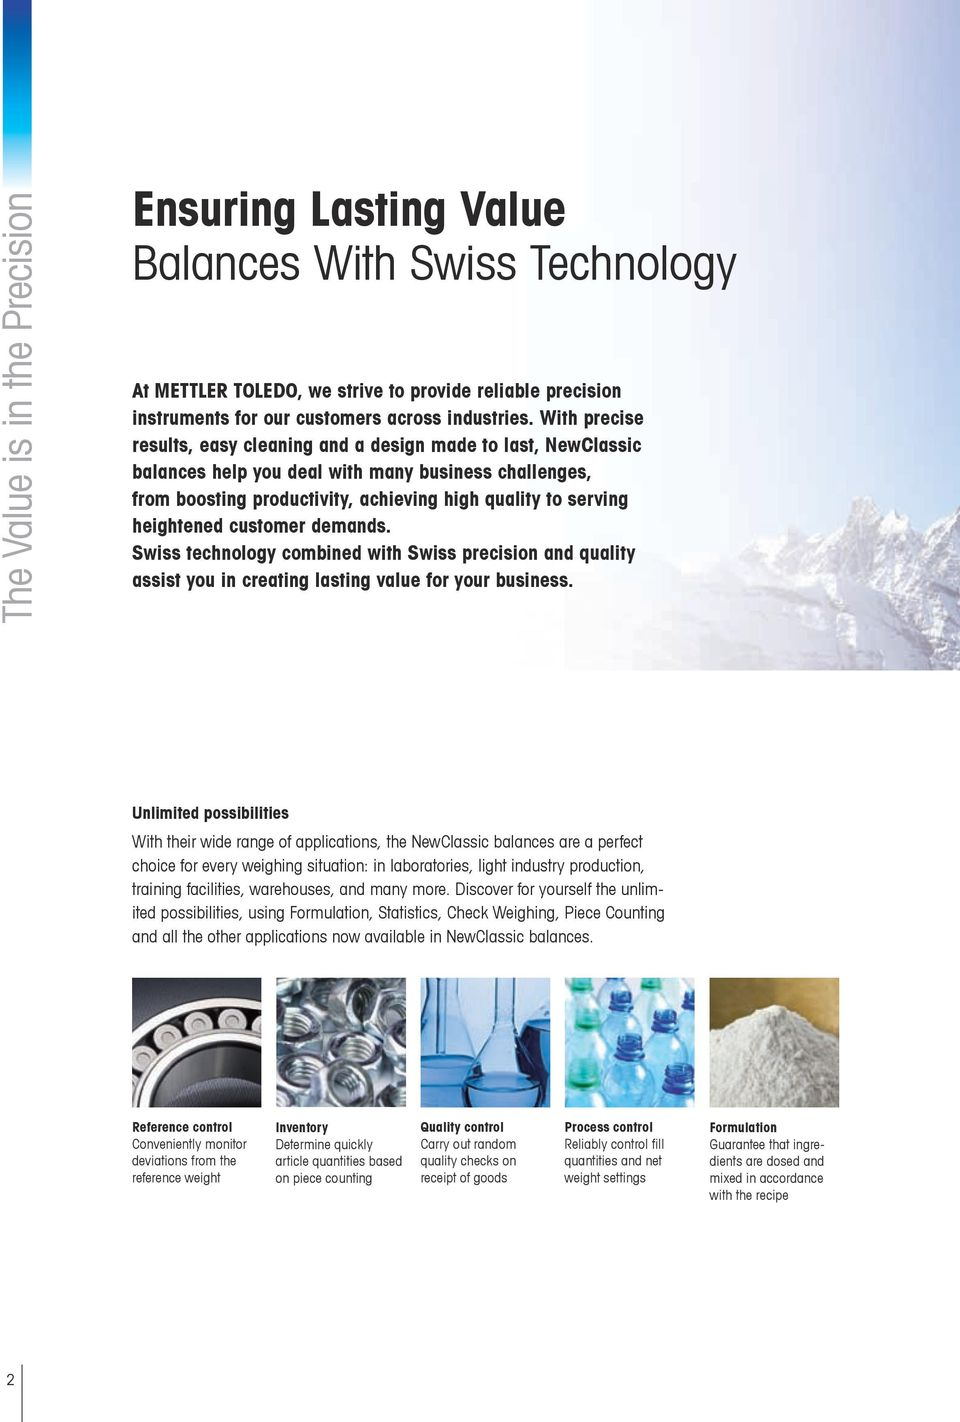 heightened customer demands. Swiss technology combined with Swiss precision and quality assist you in creating lasting value for your business.